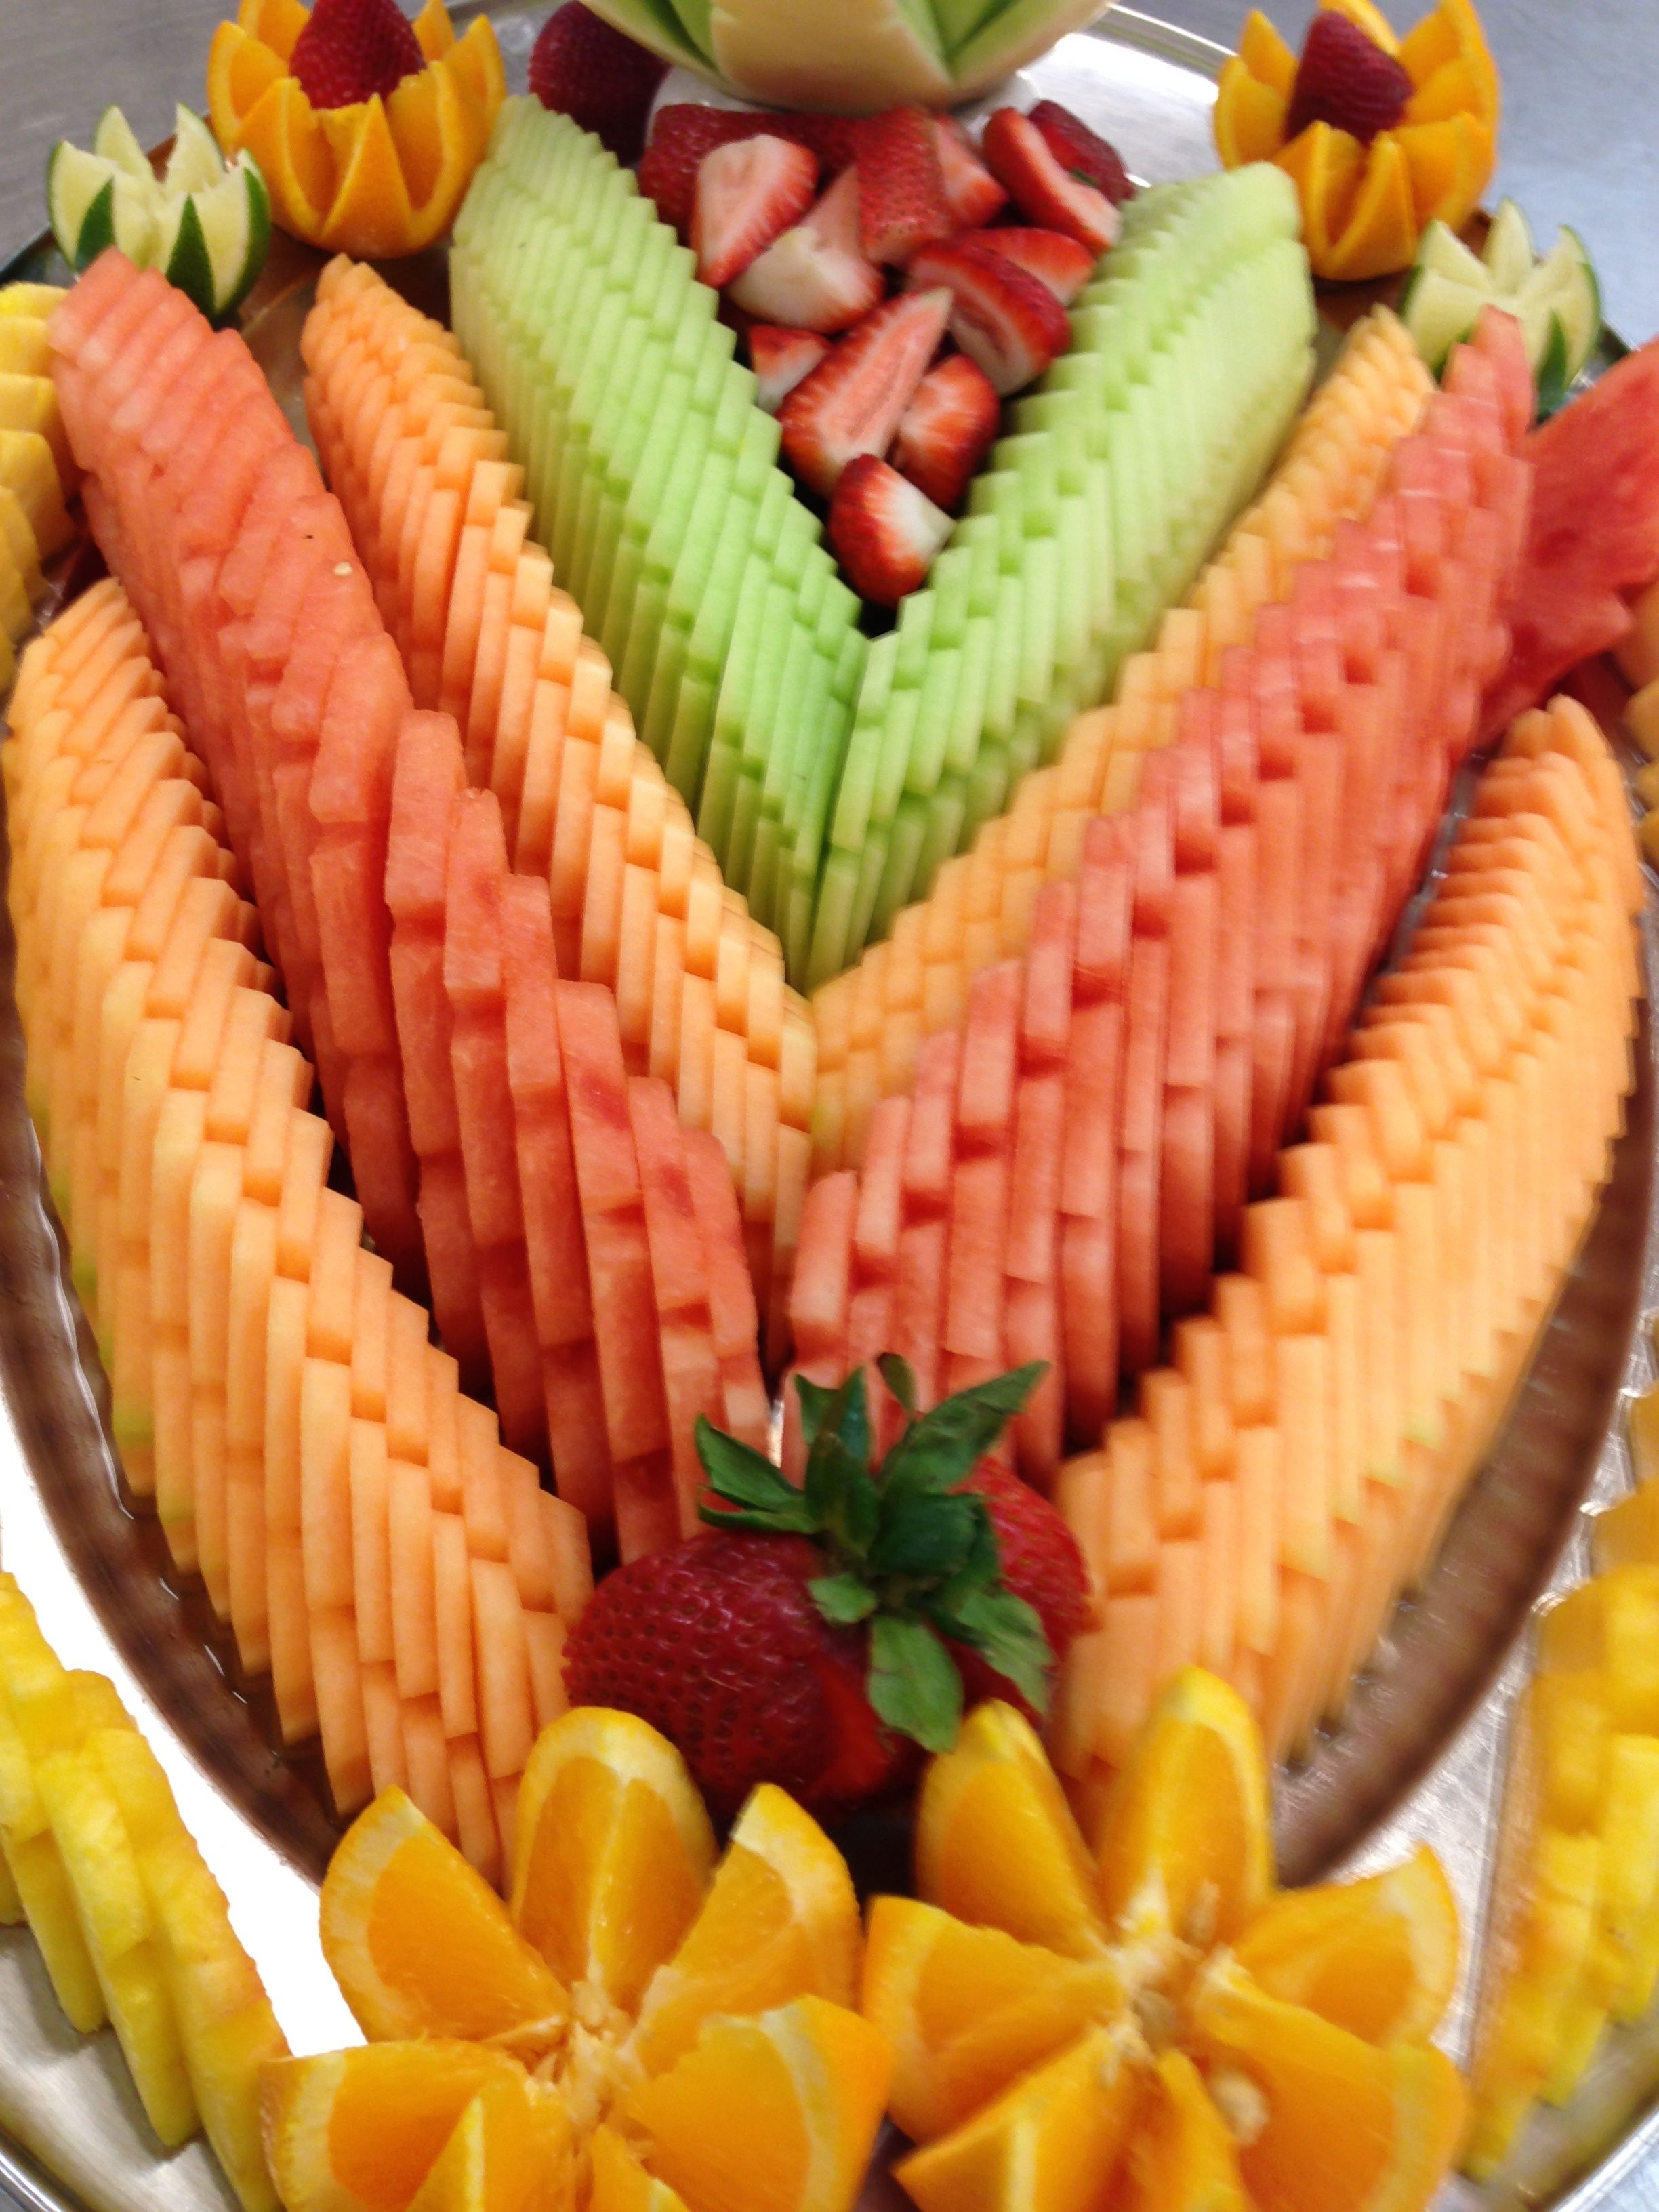 Edible art gallery fruits carving pinterest edible art